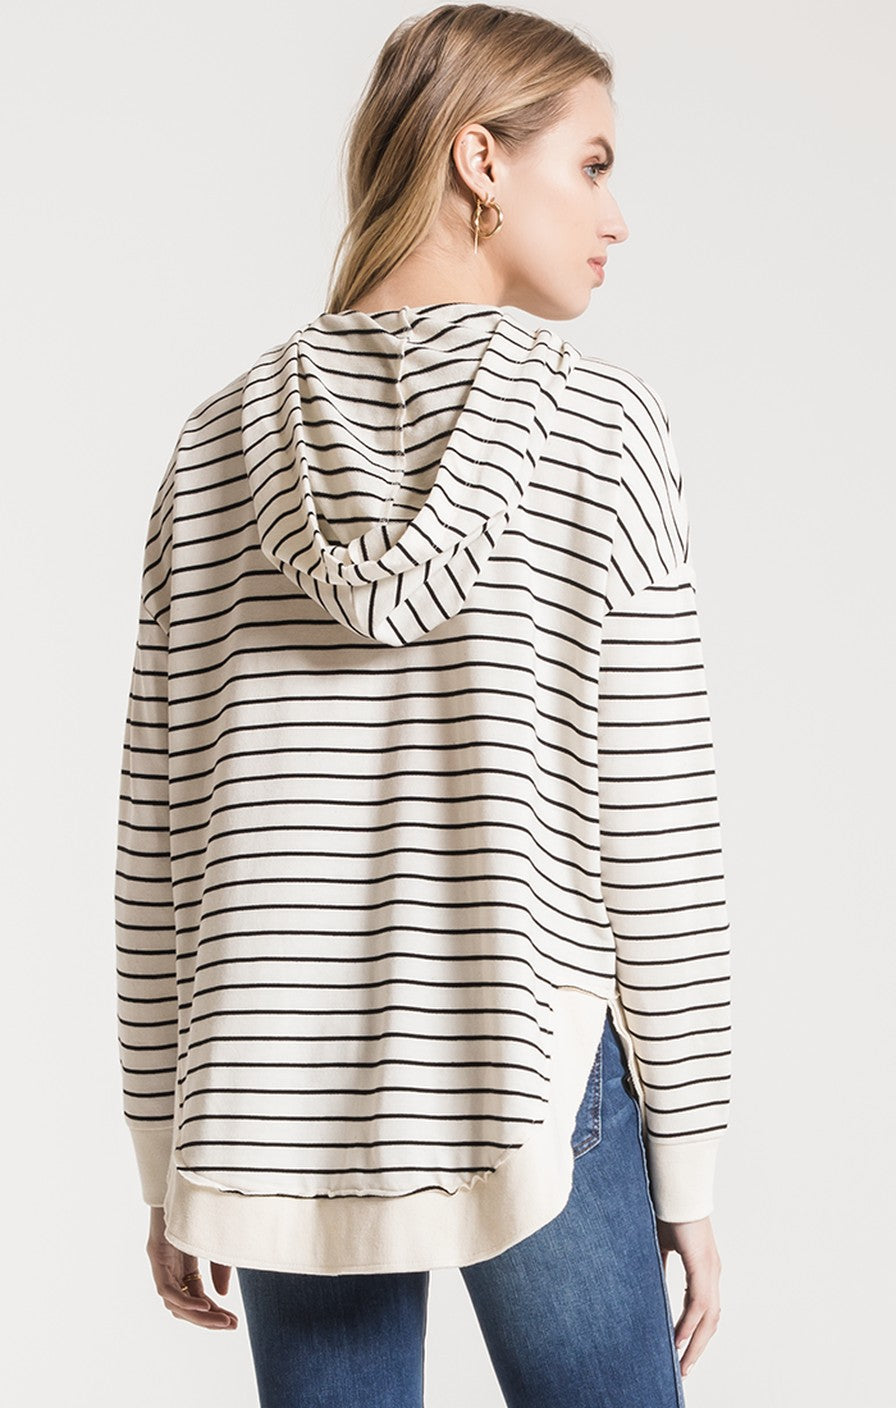 Z Supply The Striped Dakota Pullover - Pearl/Black